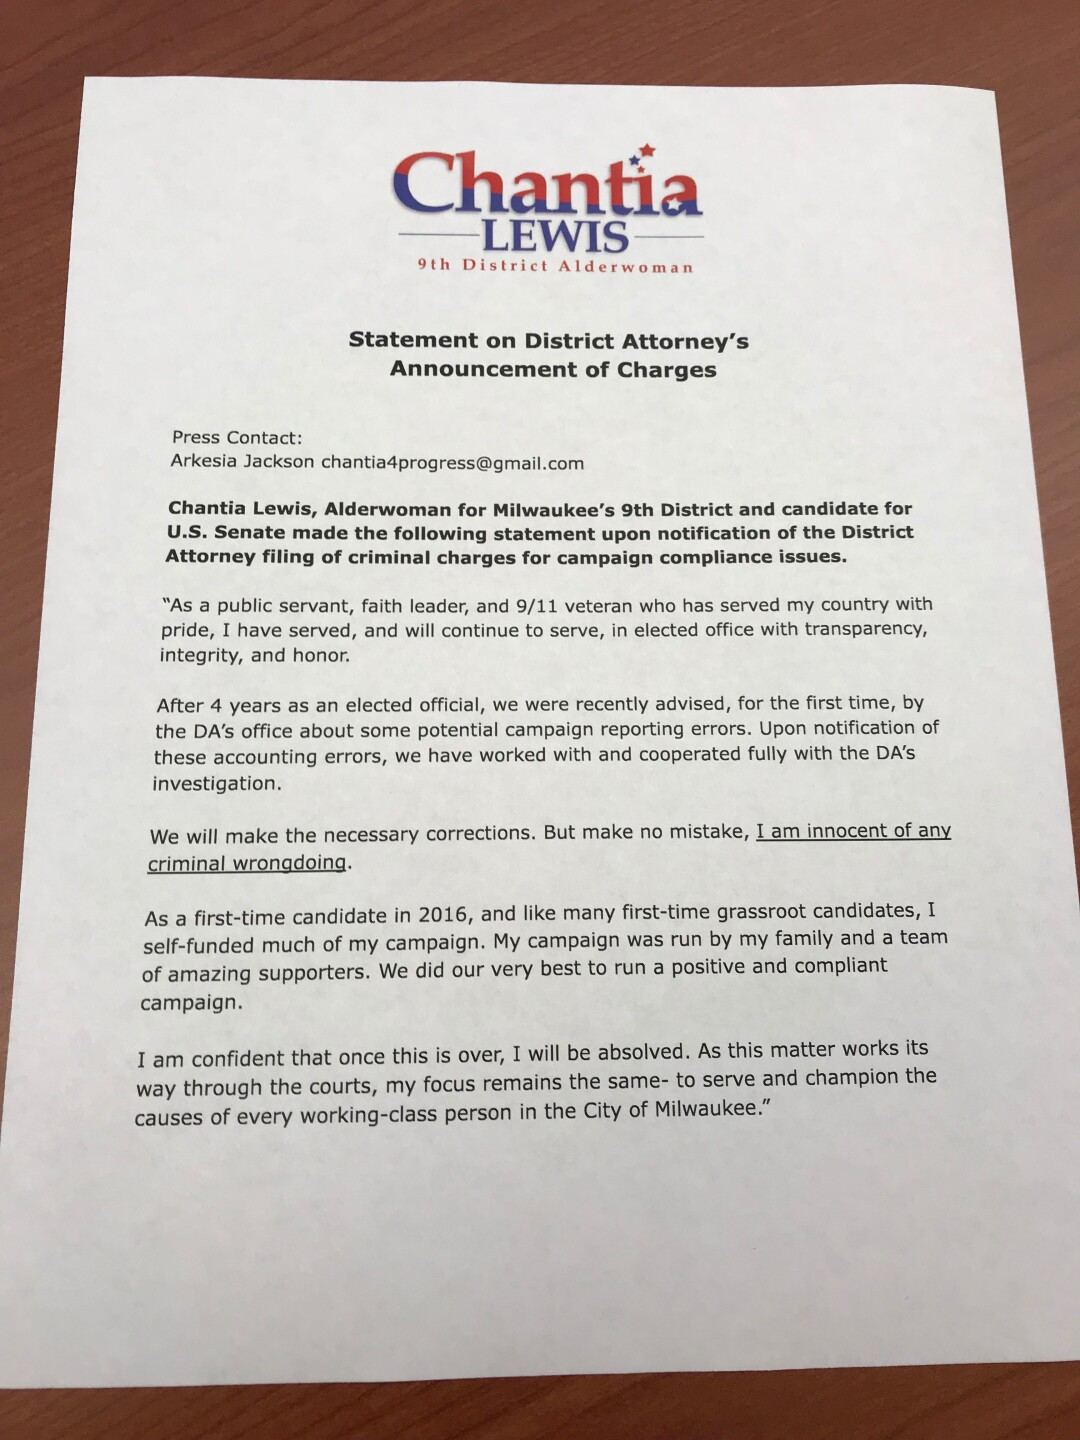 Statement from Chantia Lewis on charges